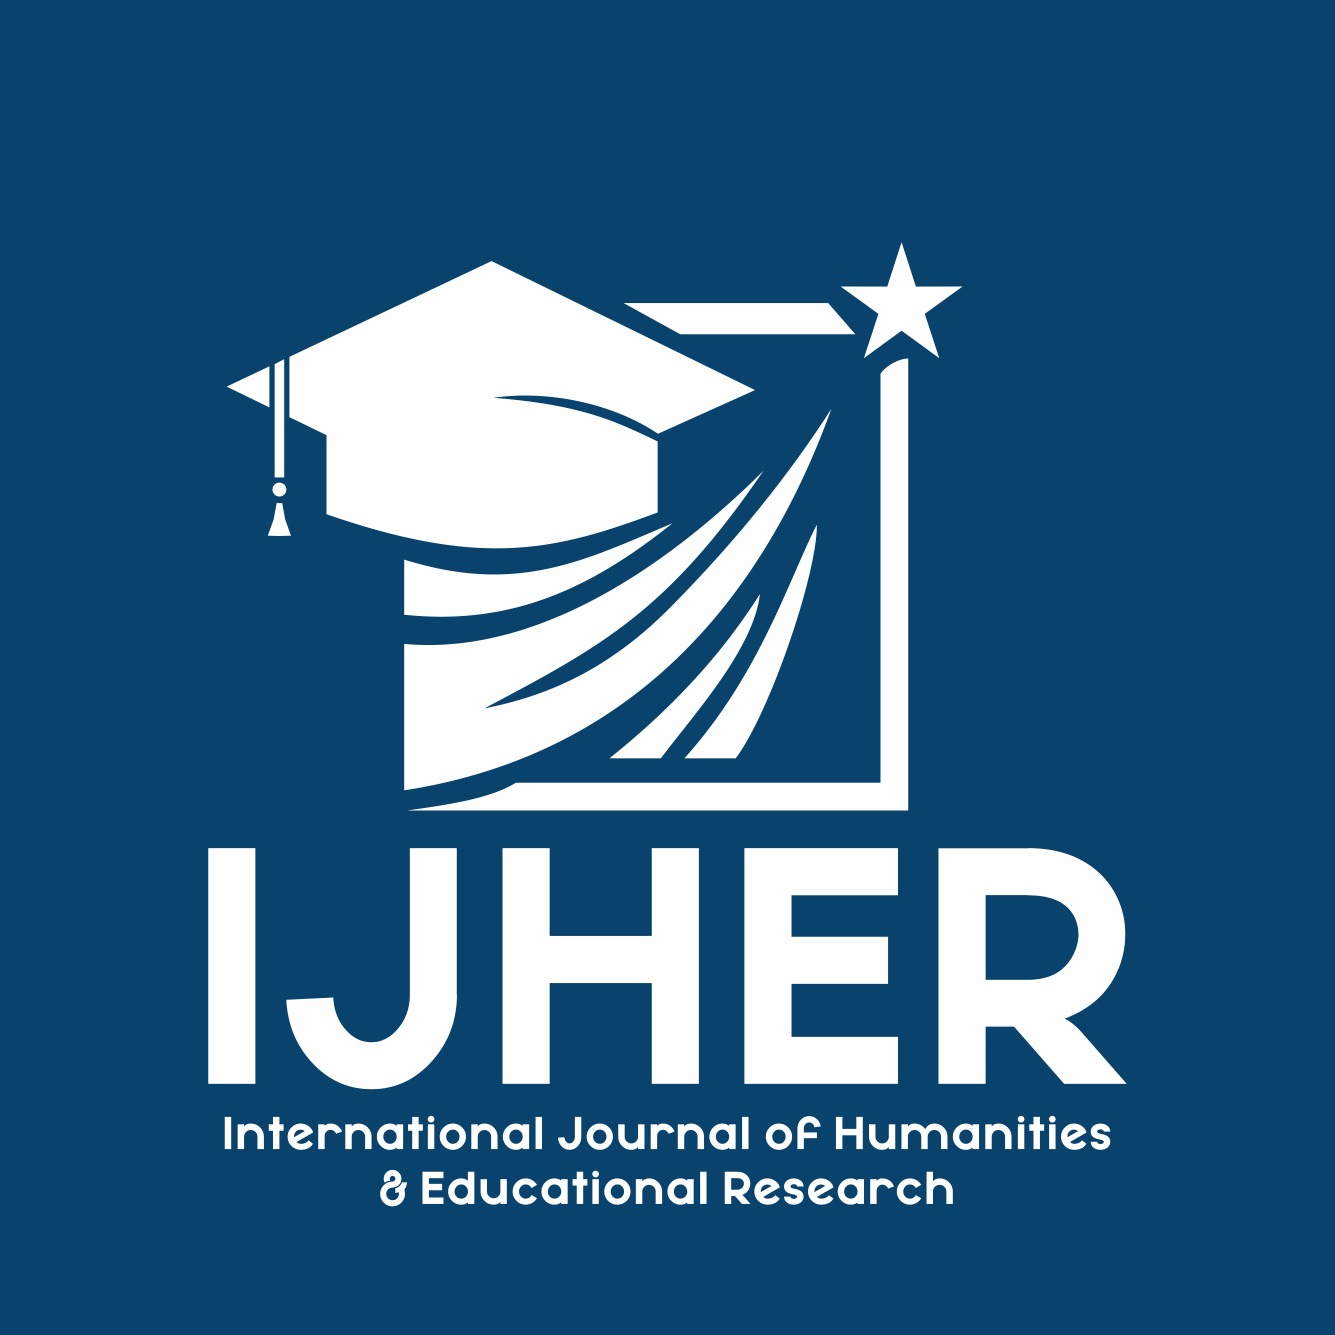 International Journal of Humanities and Educational Research